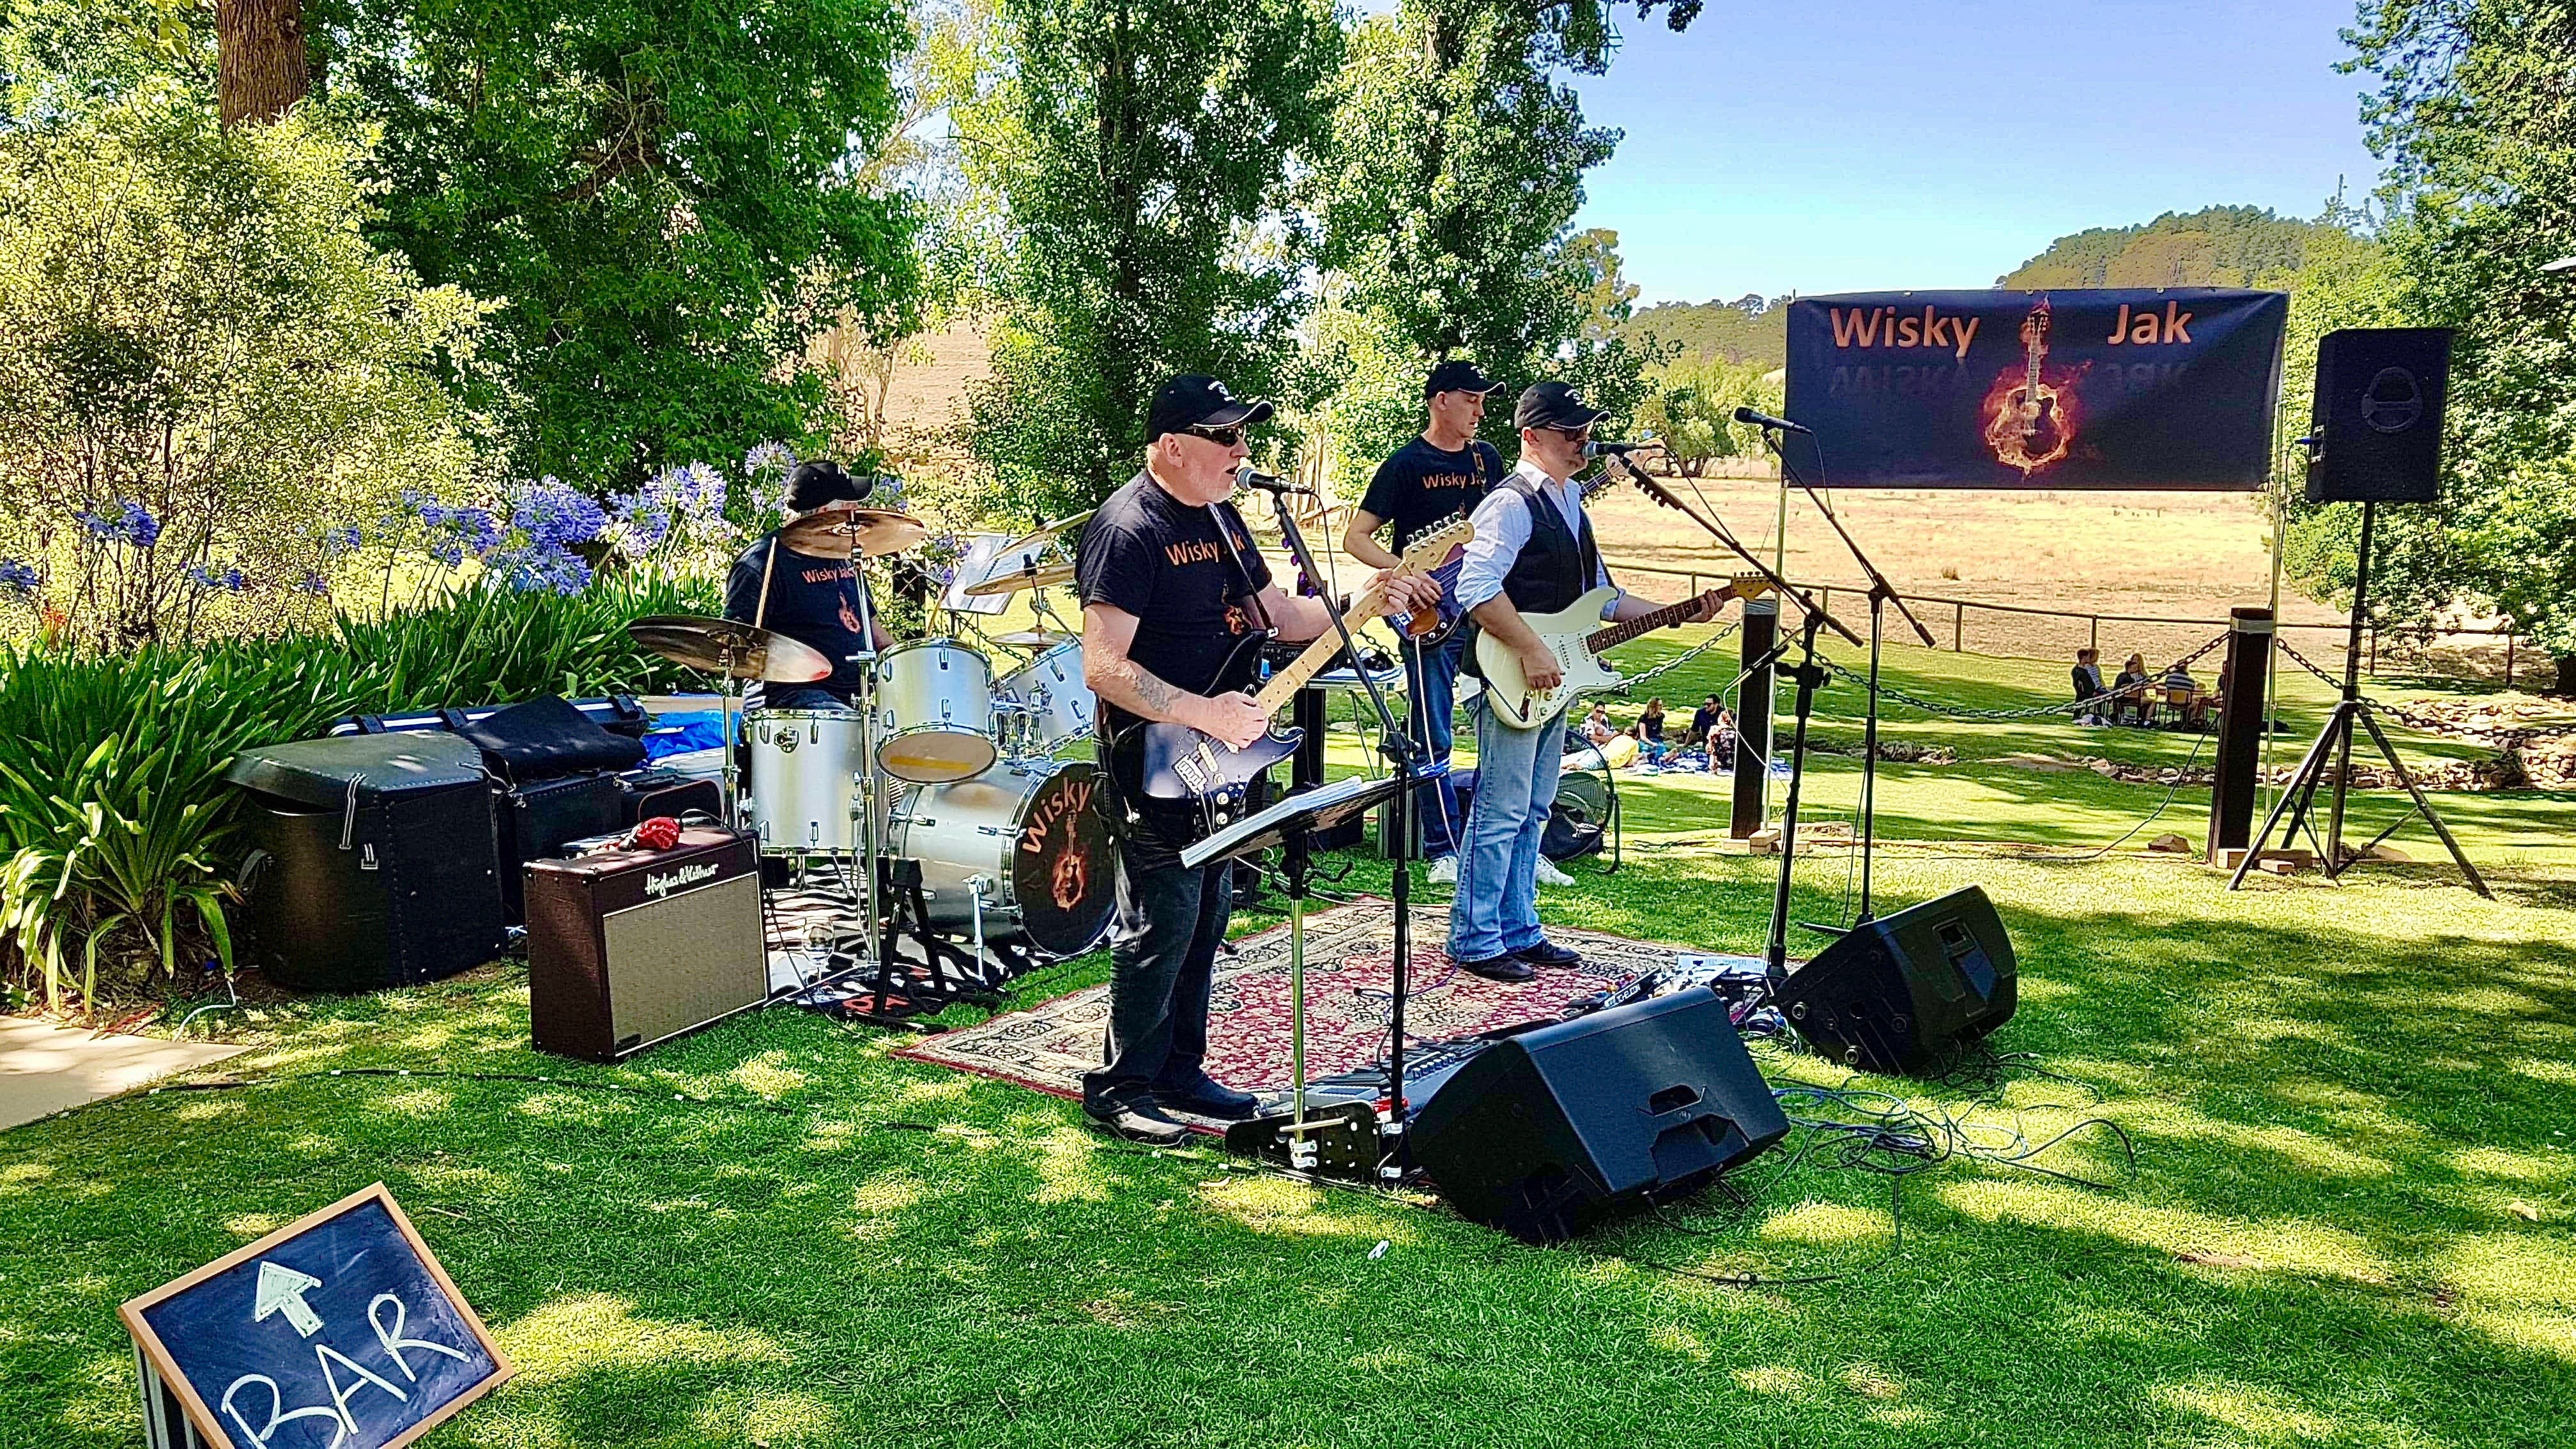 Angas Plains Wines Live in the Vines with the band -Wisky Jak - Pubs and Clubs